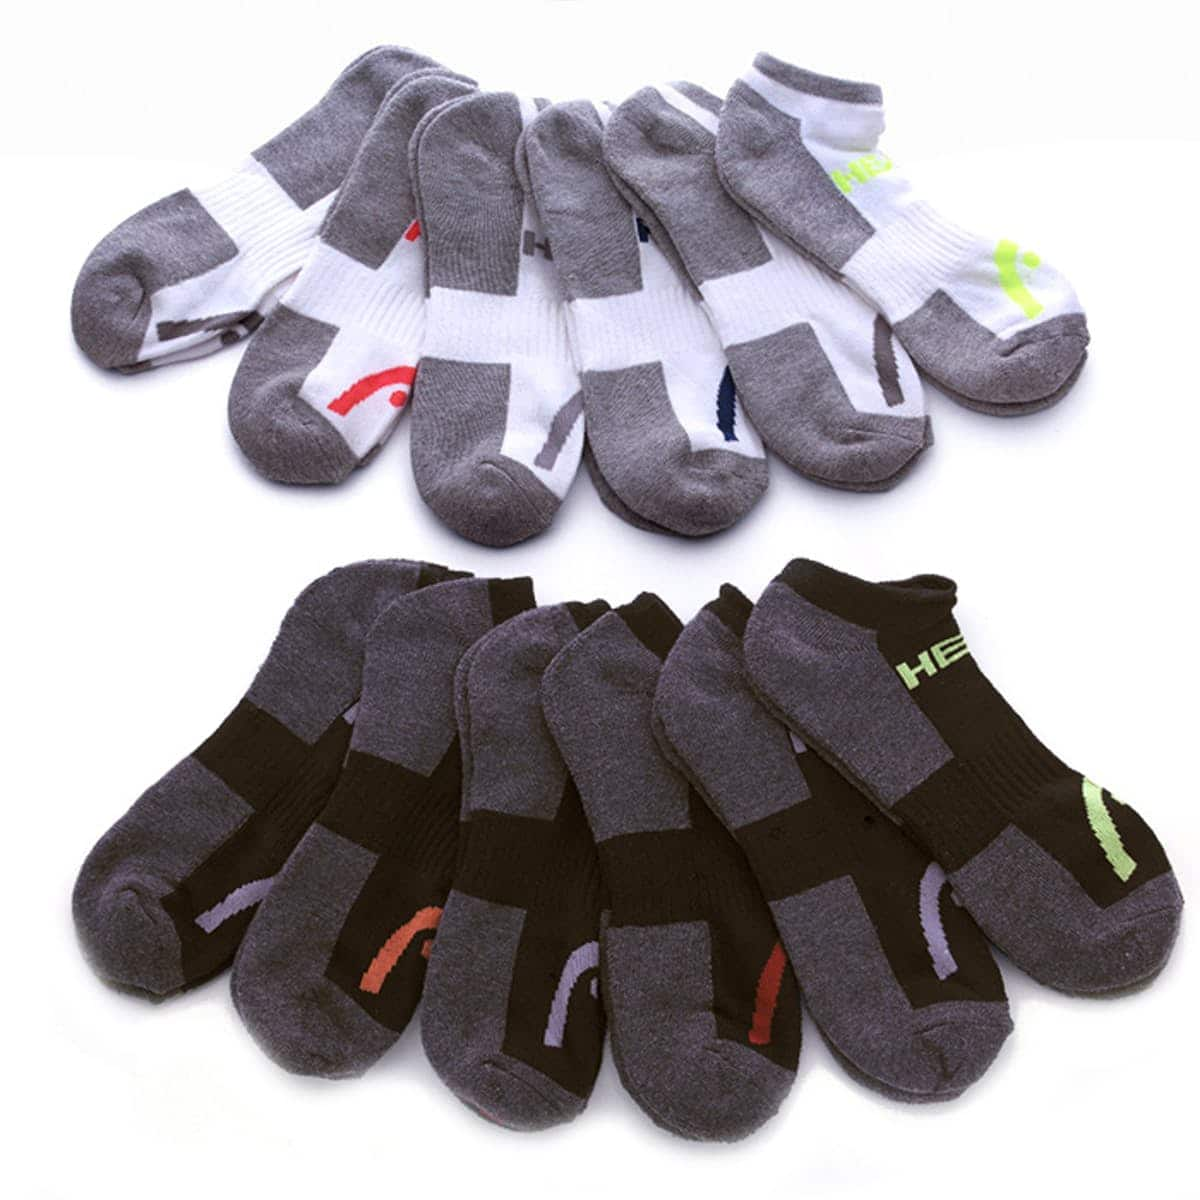 10-Pairs HEAD Men's Moisture-Wicking Socks for $13.99 w/ free shipping